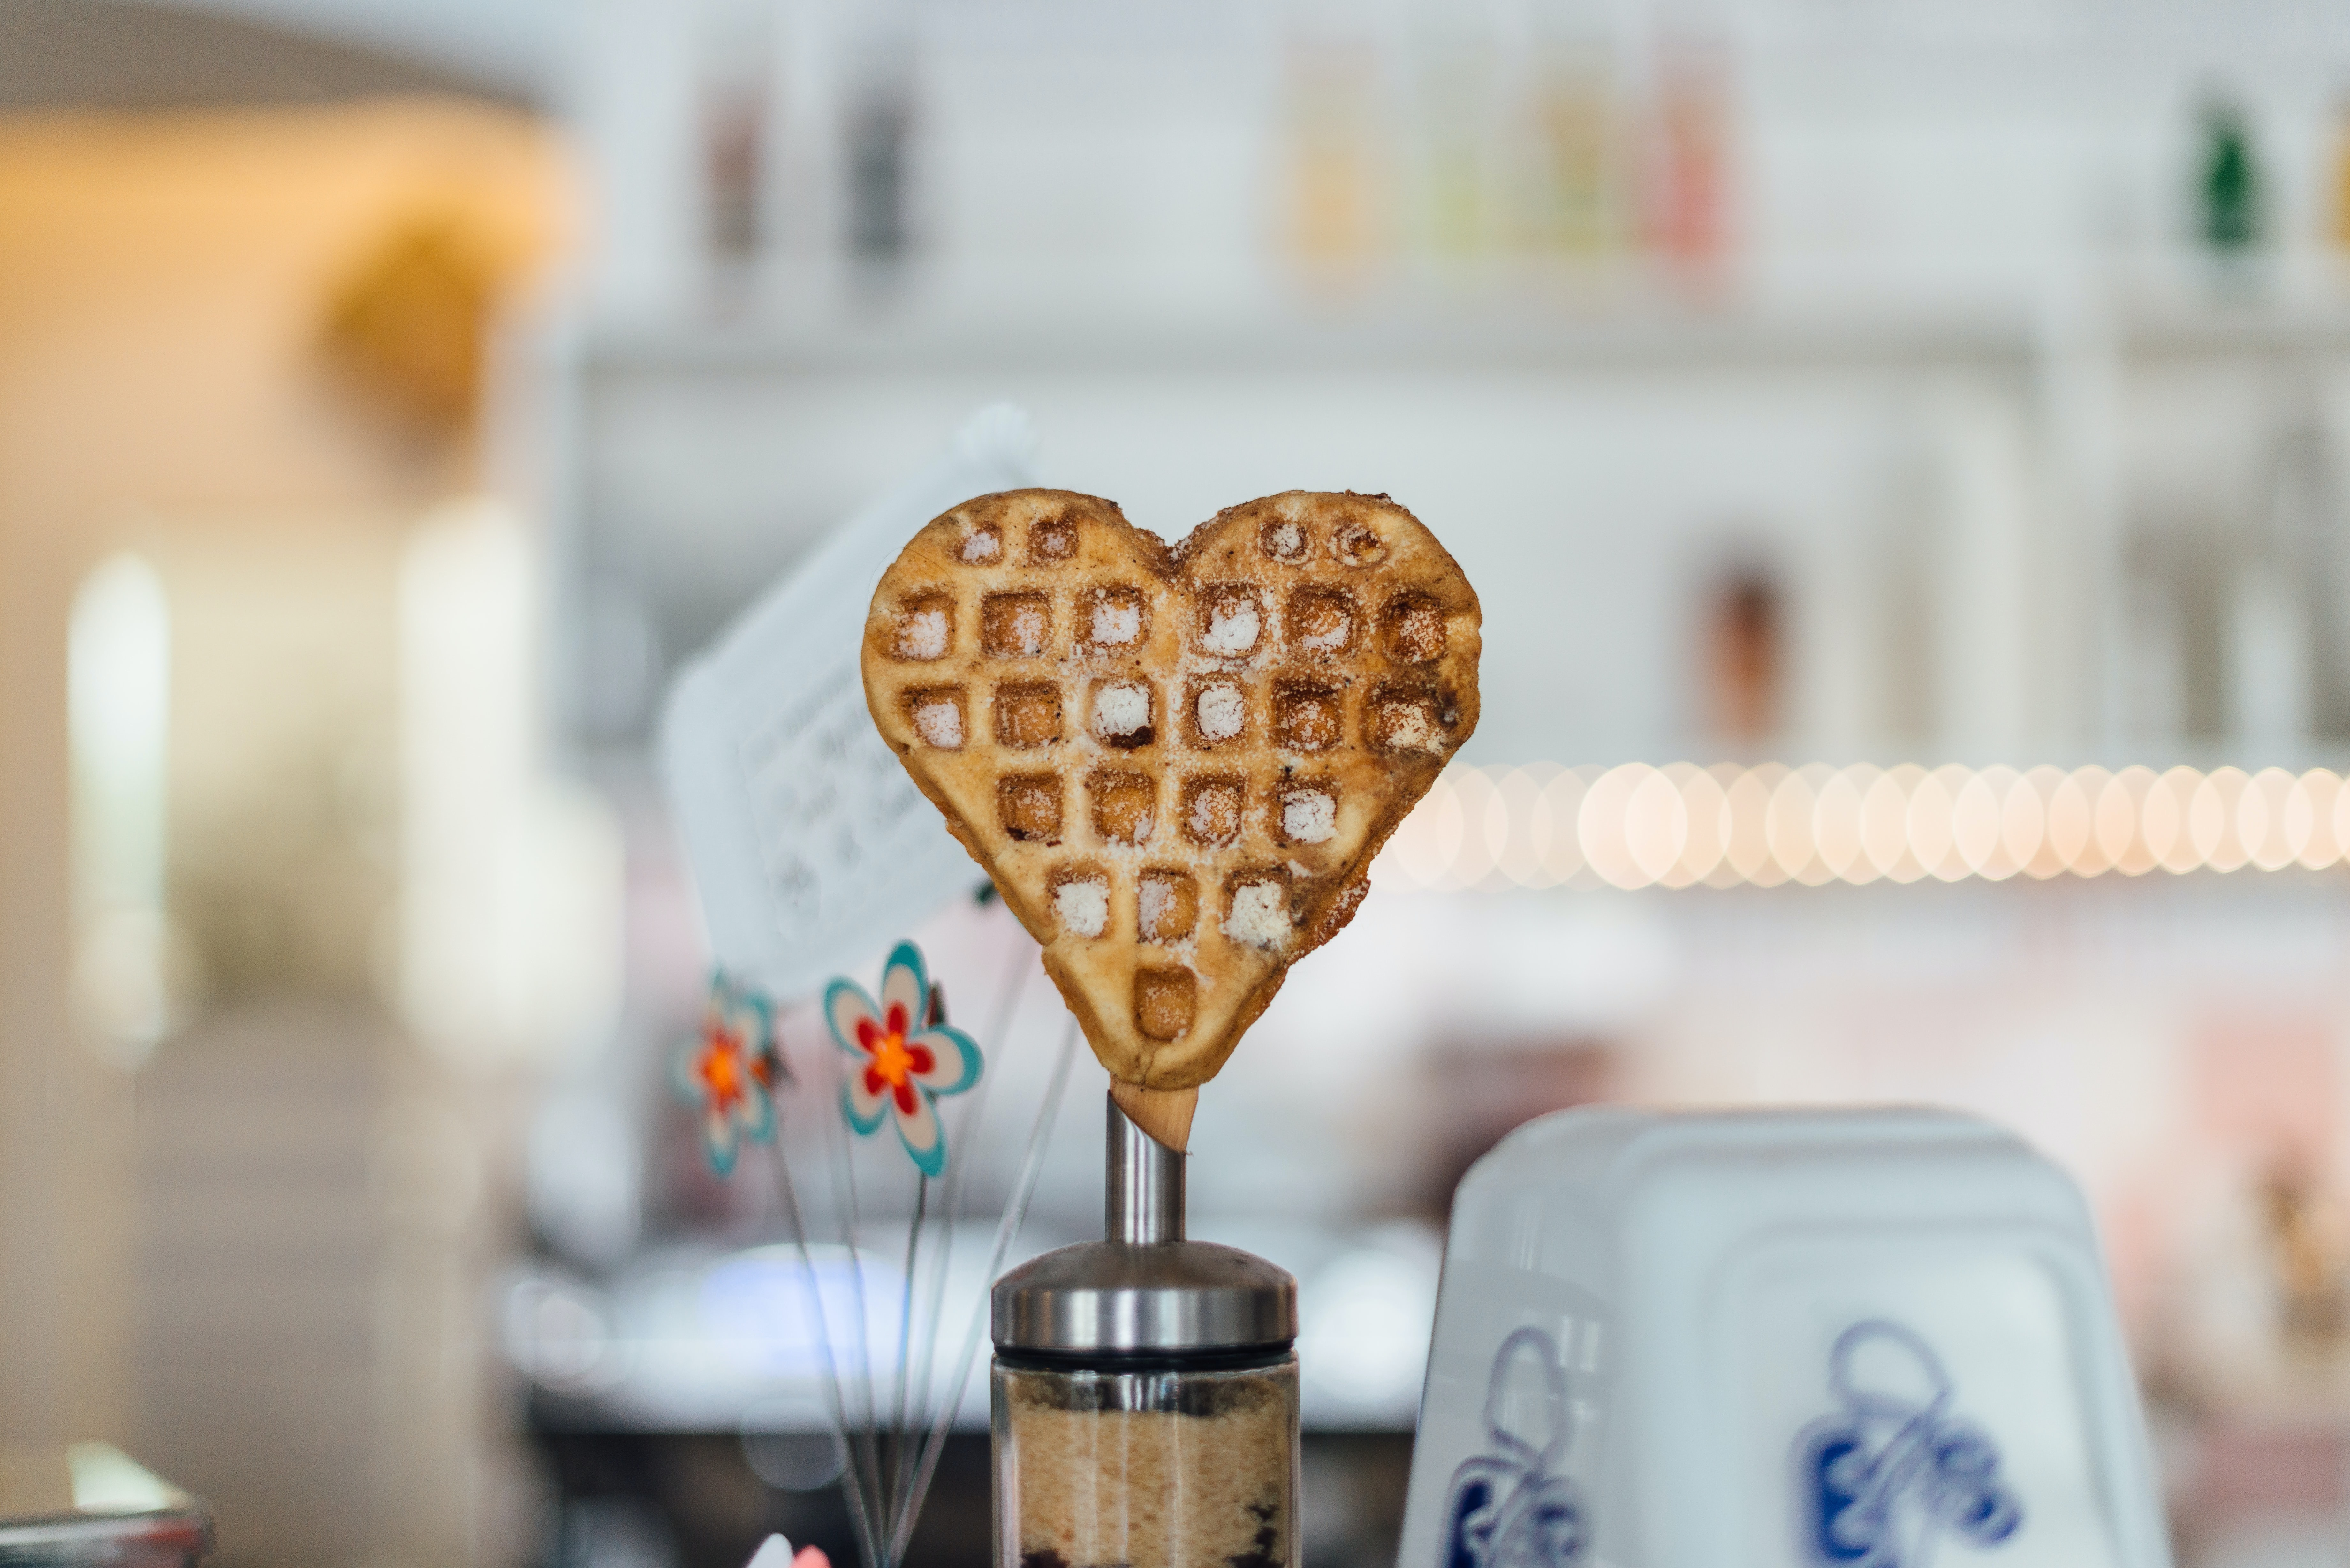 A waffle in the shape of a heart is displayed at a bright shop in Maybachufer